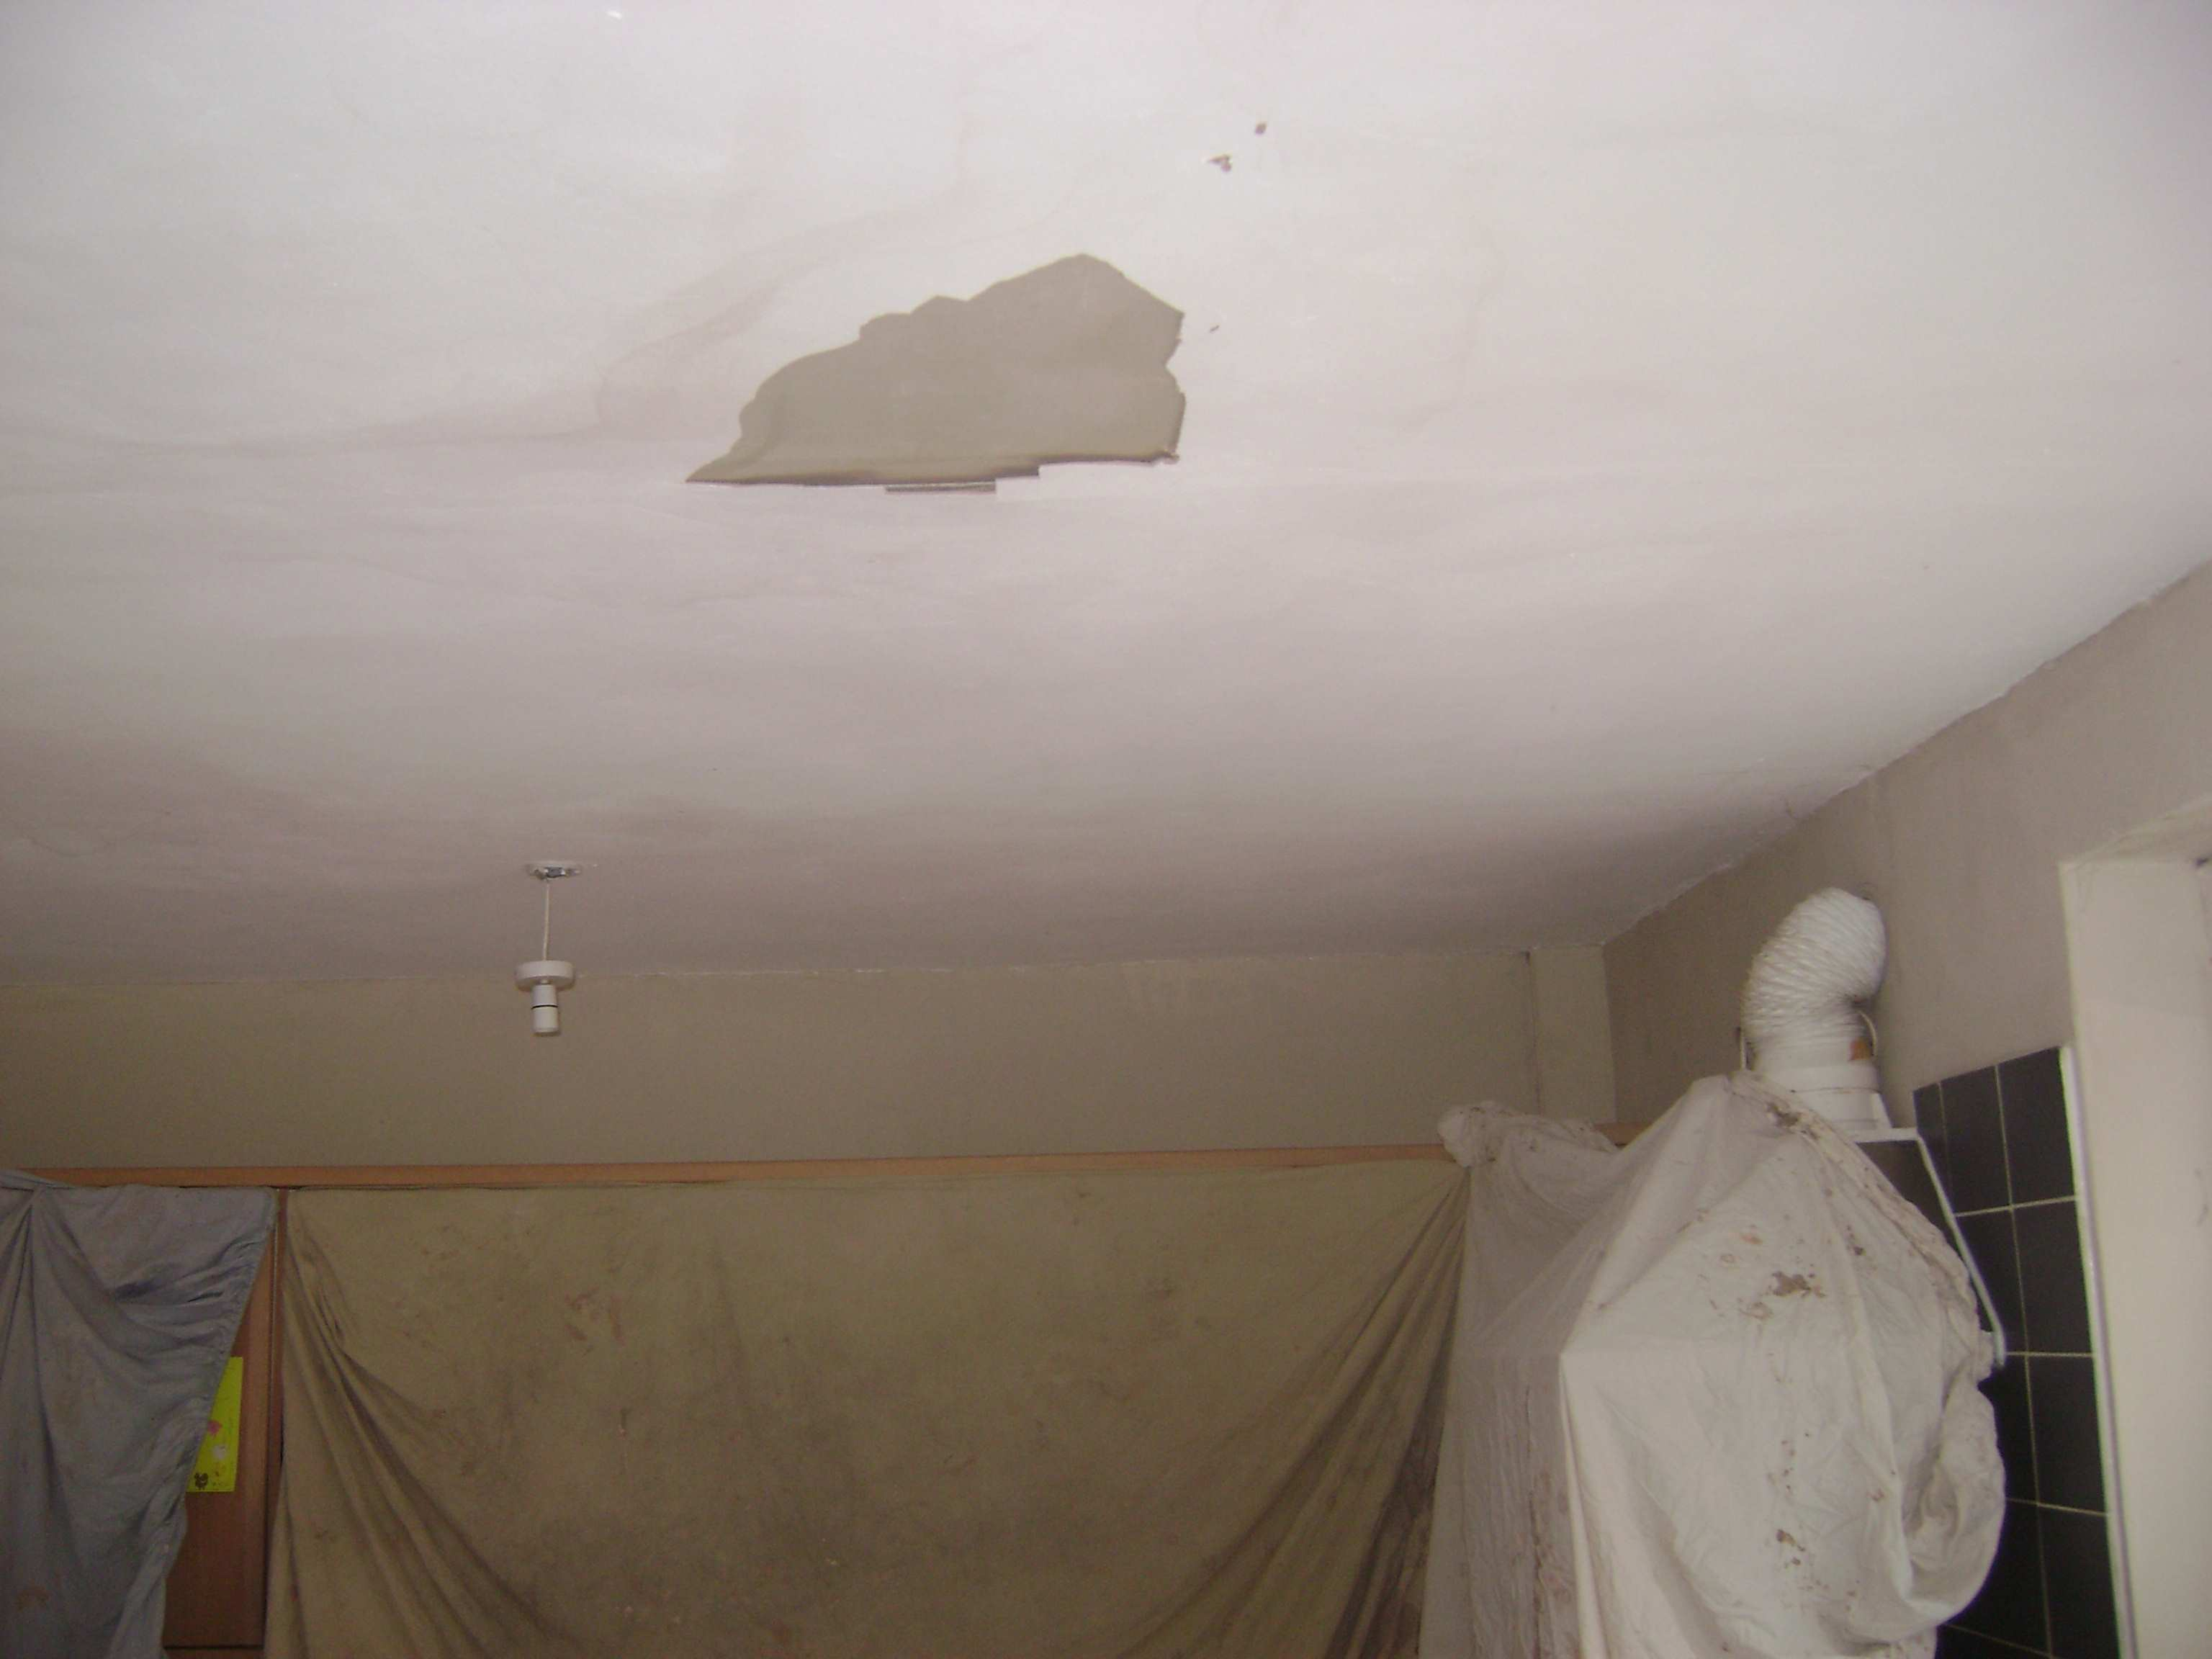 This ceiling had been water damaged from a leaking pipe above and allowed to dry, causing the plaster to blow